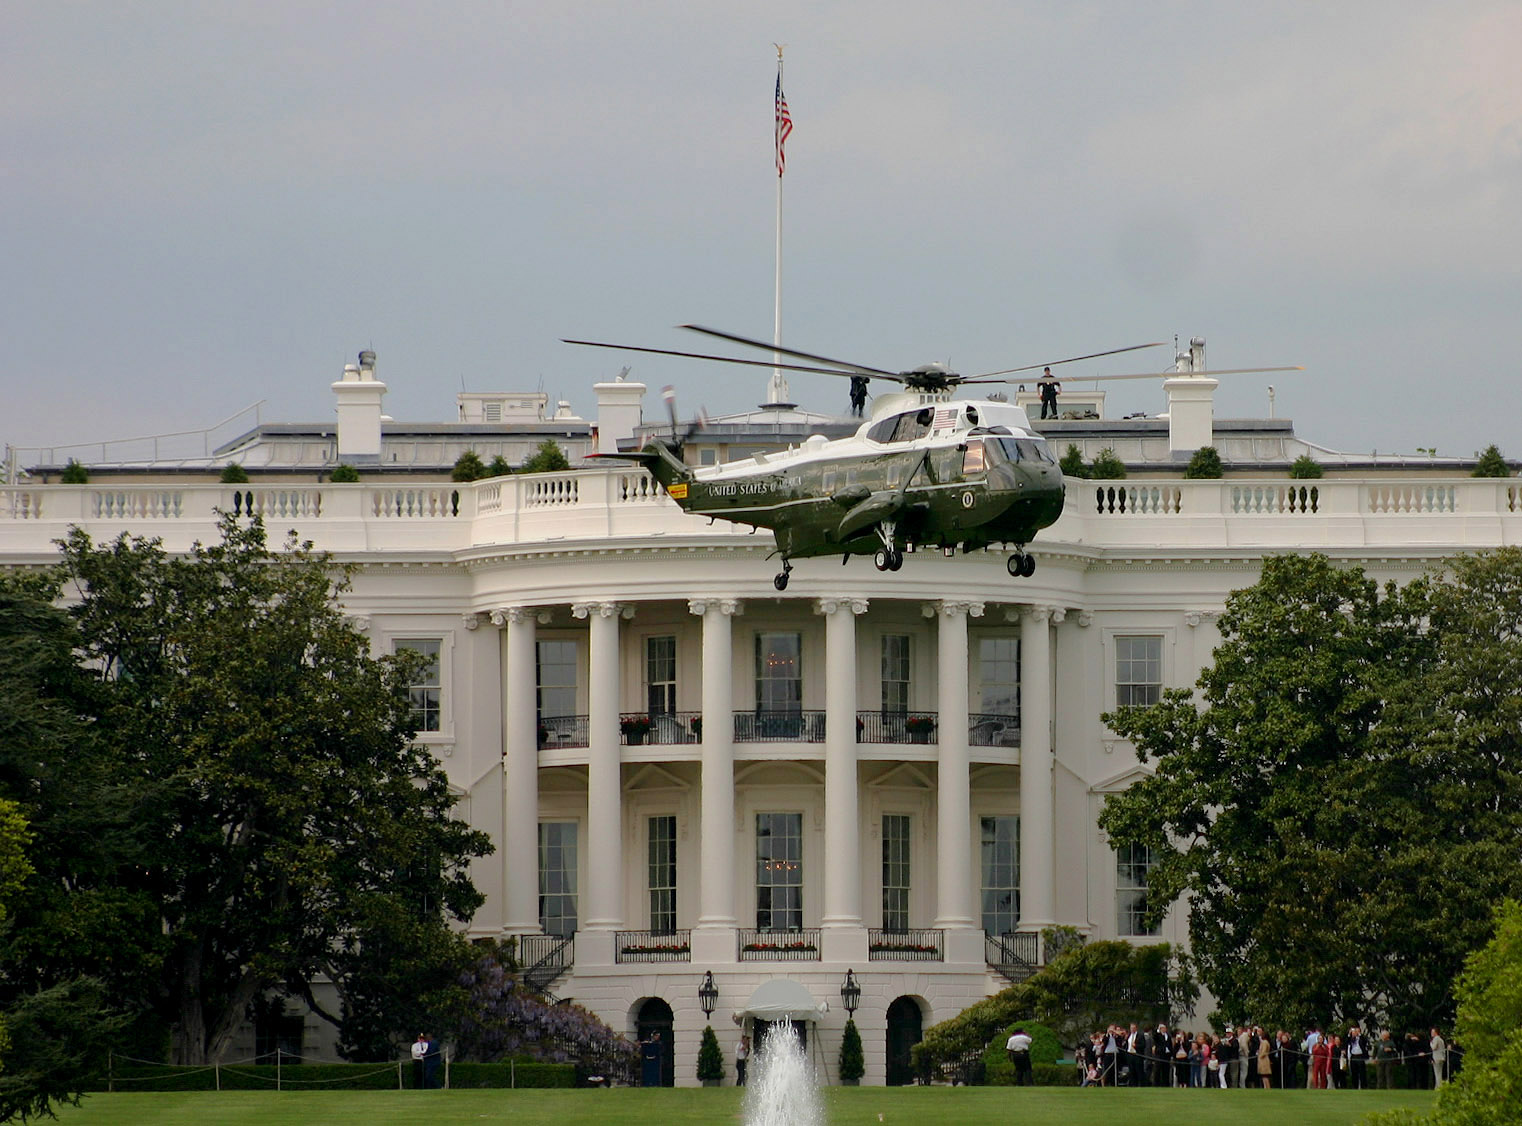 marine one helicopter with File Marine One 2005 on File marine one 2005 likewise Shi recked Supertankers Bulk Carriers also 599735 further 998 in addition F 14 Tomcat.